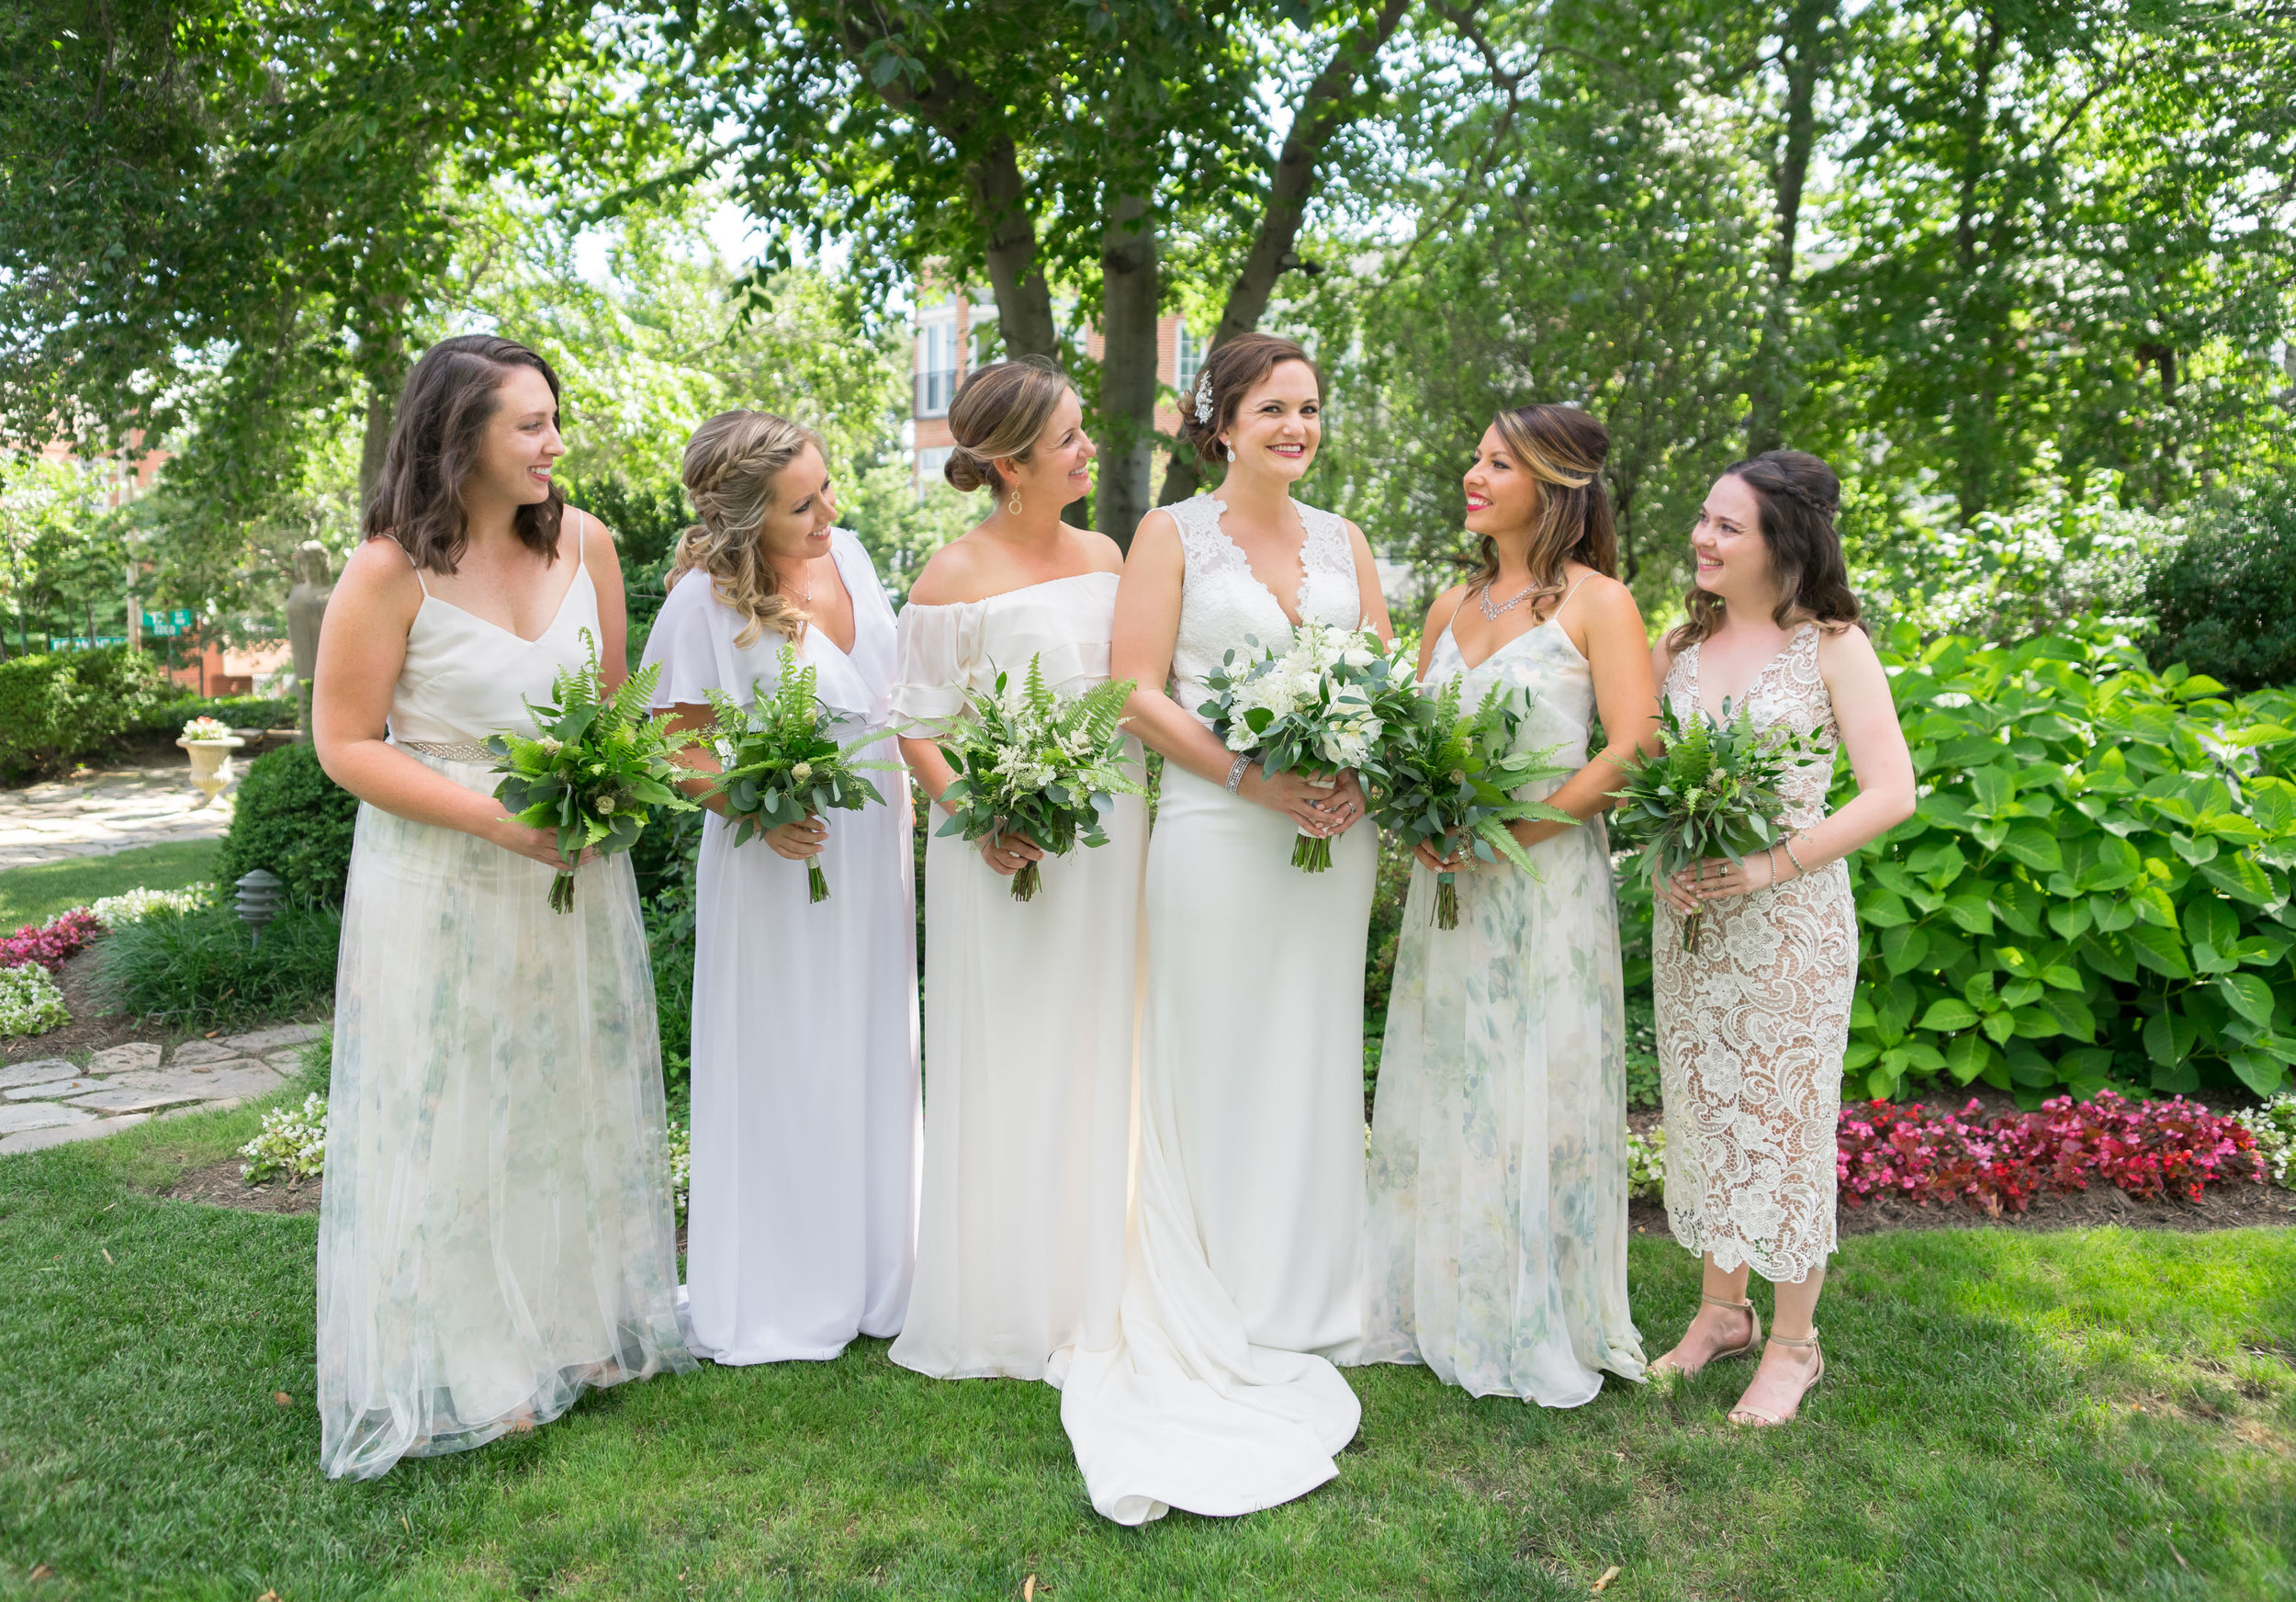 Bride and bridesmaids getting ready at Meridian House in DC by jessica nazarova